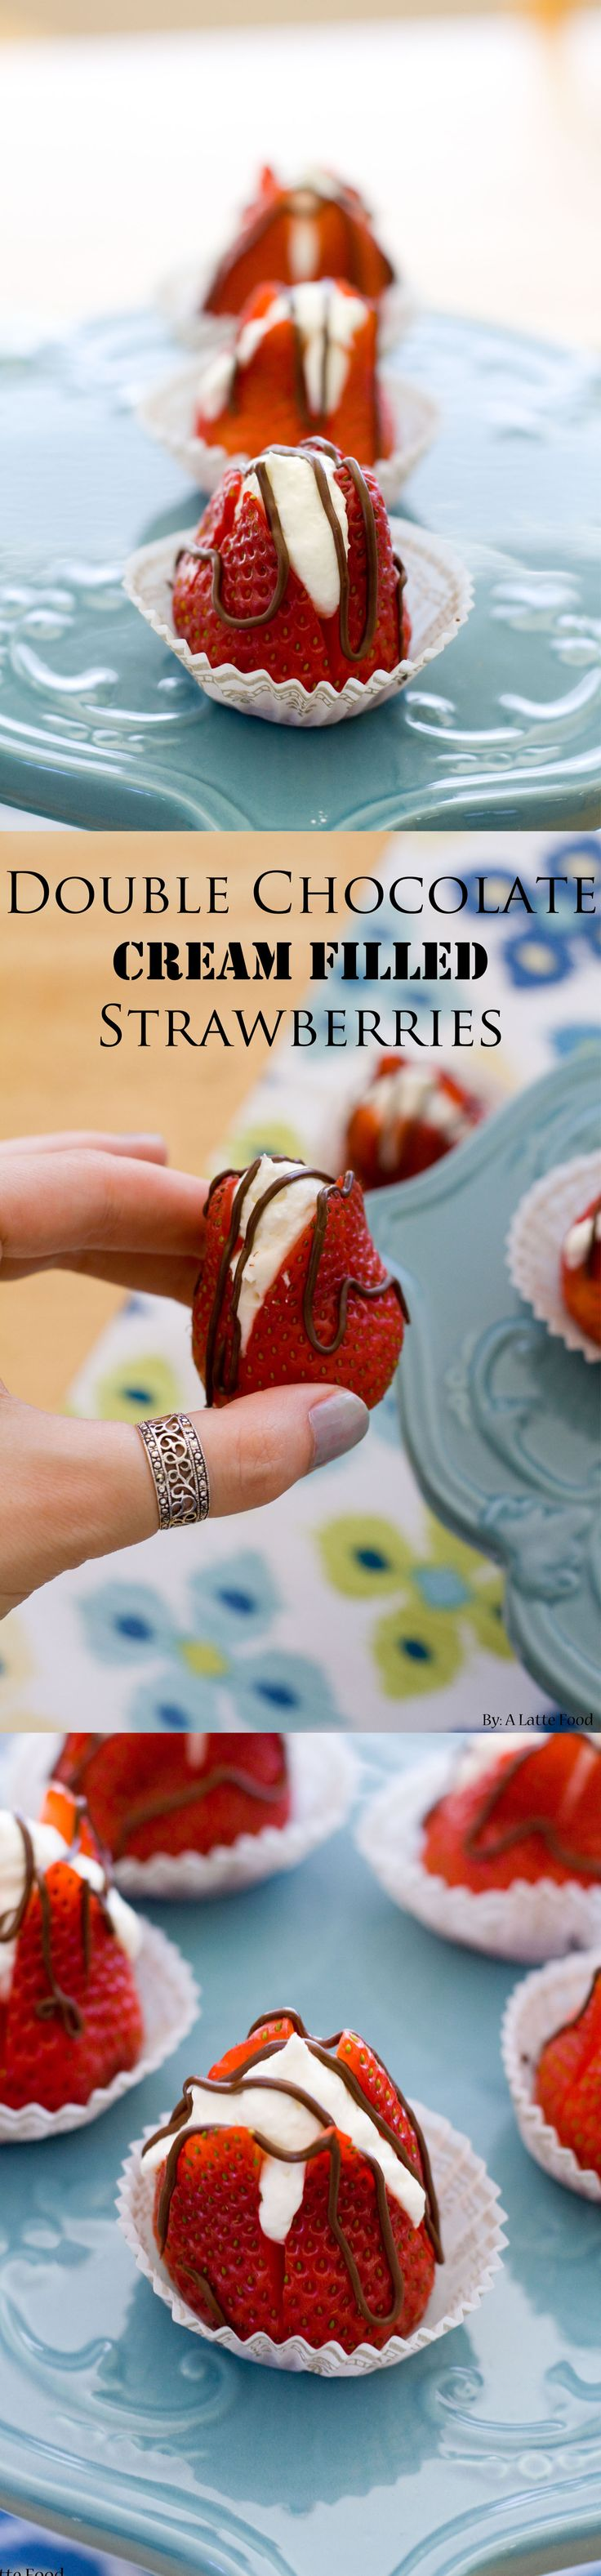 Double Chocolate Cream Filled Strawberries: This five-ingredient, tasty dessert can be whipped up in five minutes! I dare you to eat only one.